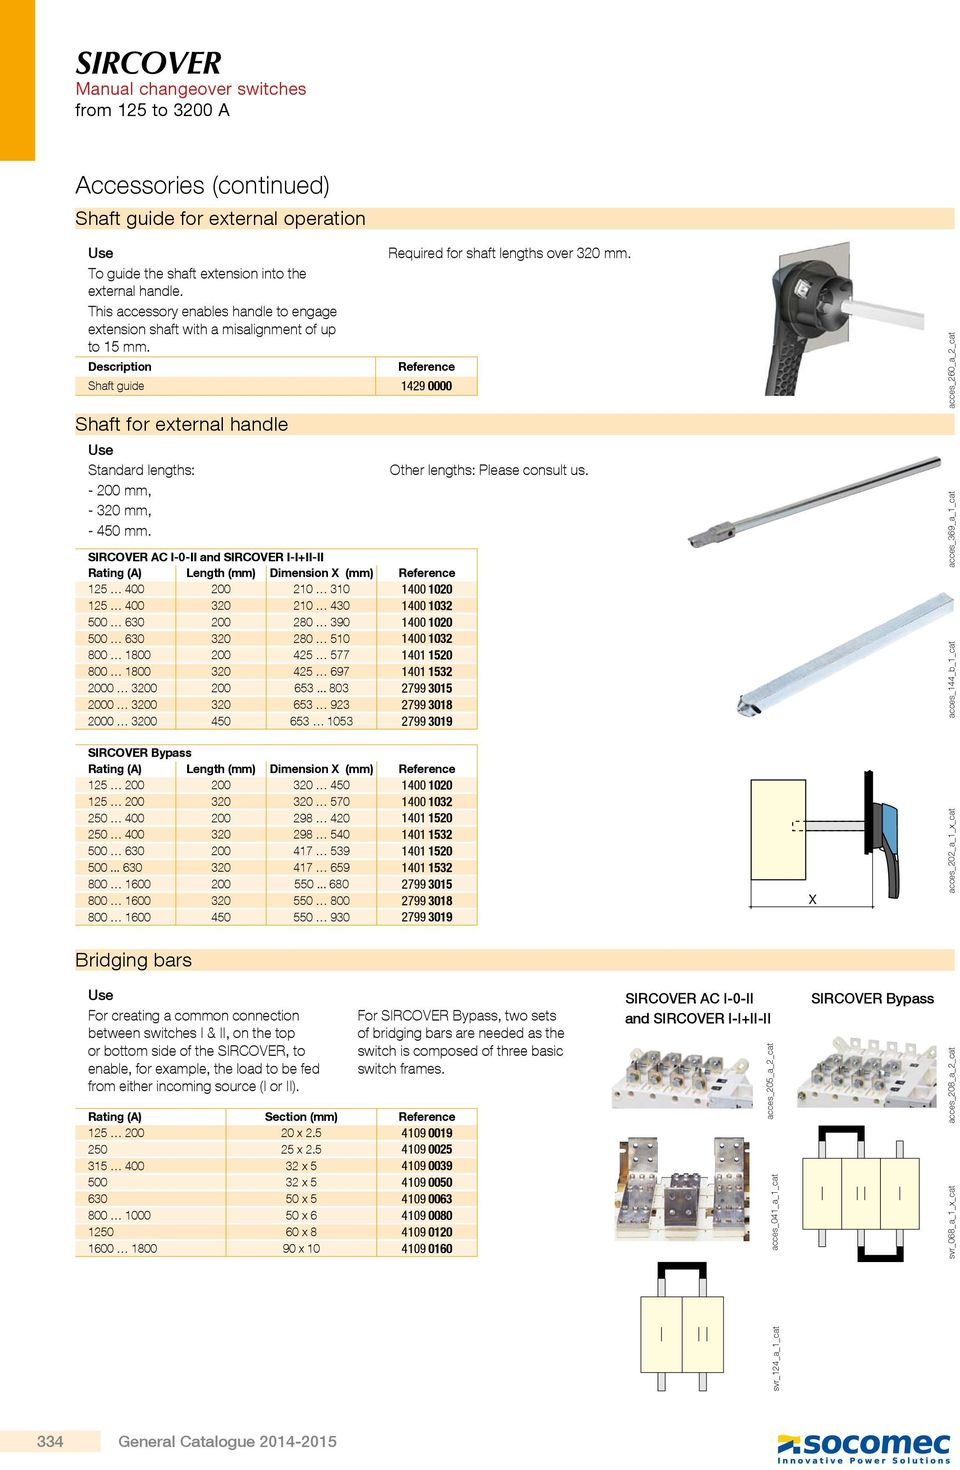 Description Reference Shaft guide 1429 0000 Shaft for external handle Standard lengths: - 200 mm, - 320 mm, - 450 mm.